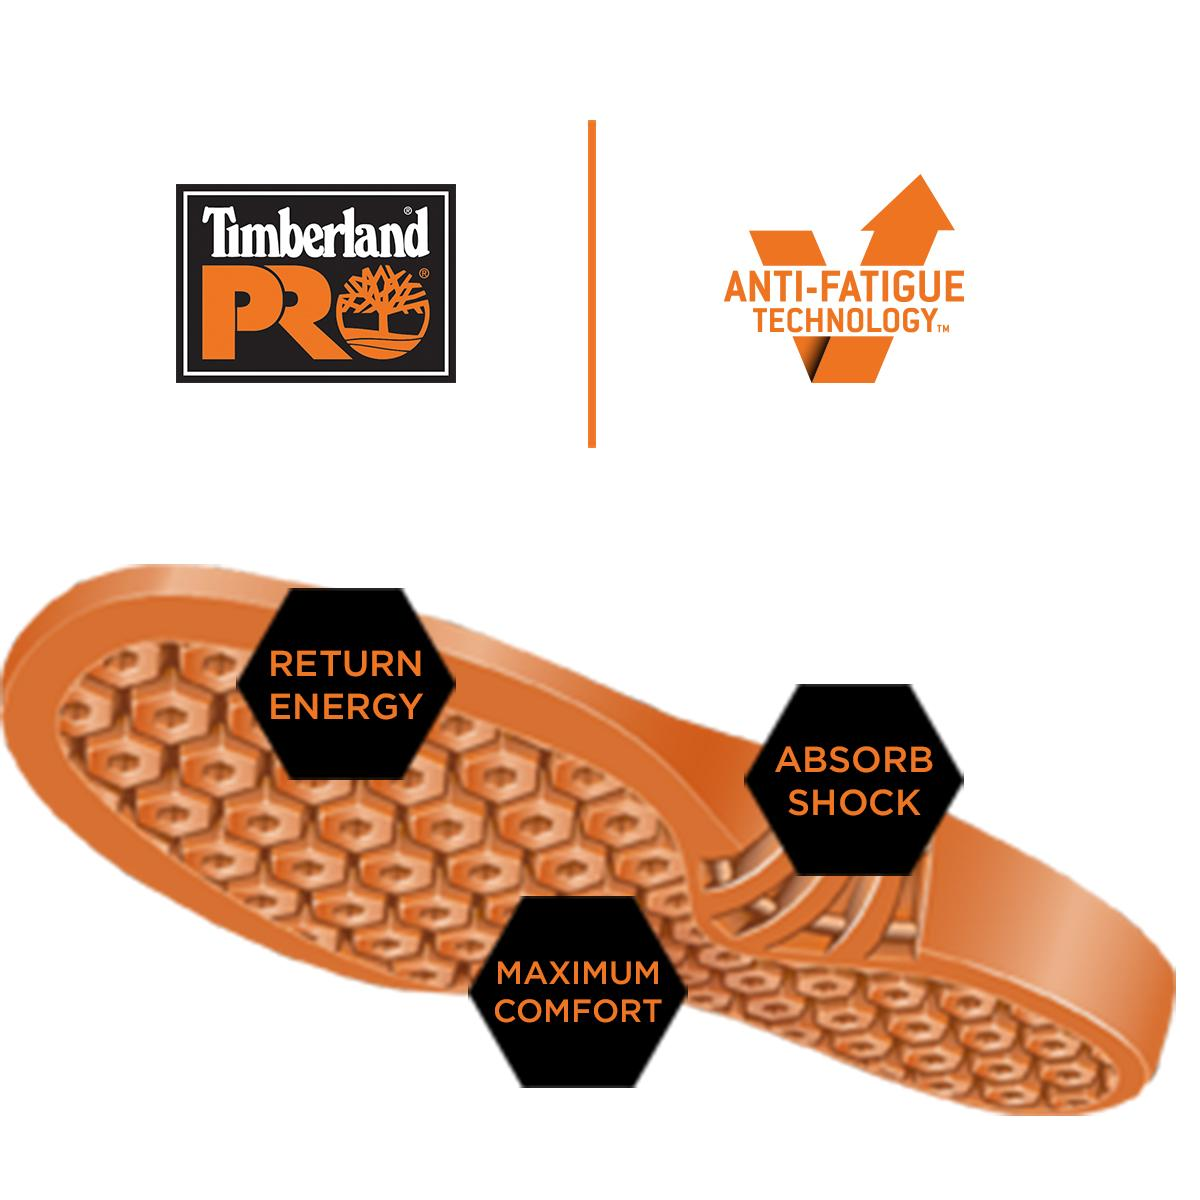 a60ad6ddadcc Amazon.com  Timberland PRO Men s Anti-Fatigue Technology Replacement ...